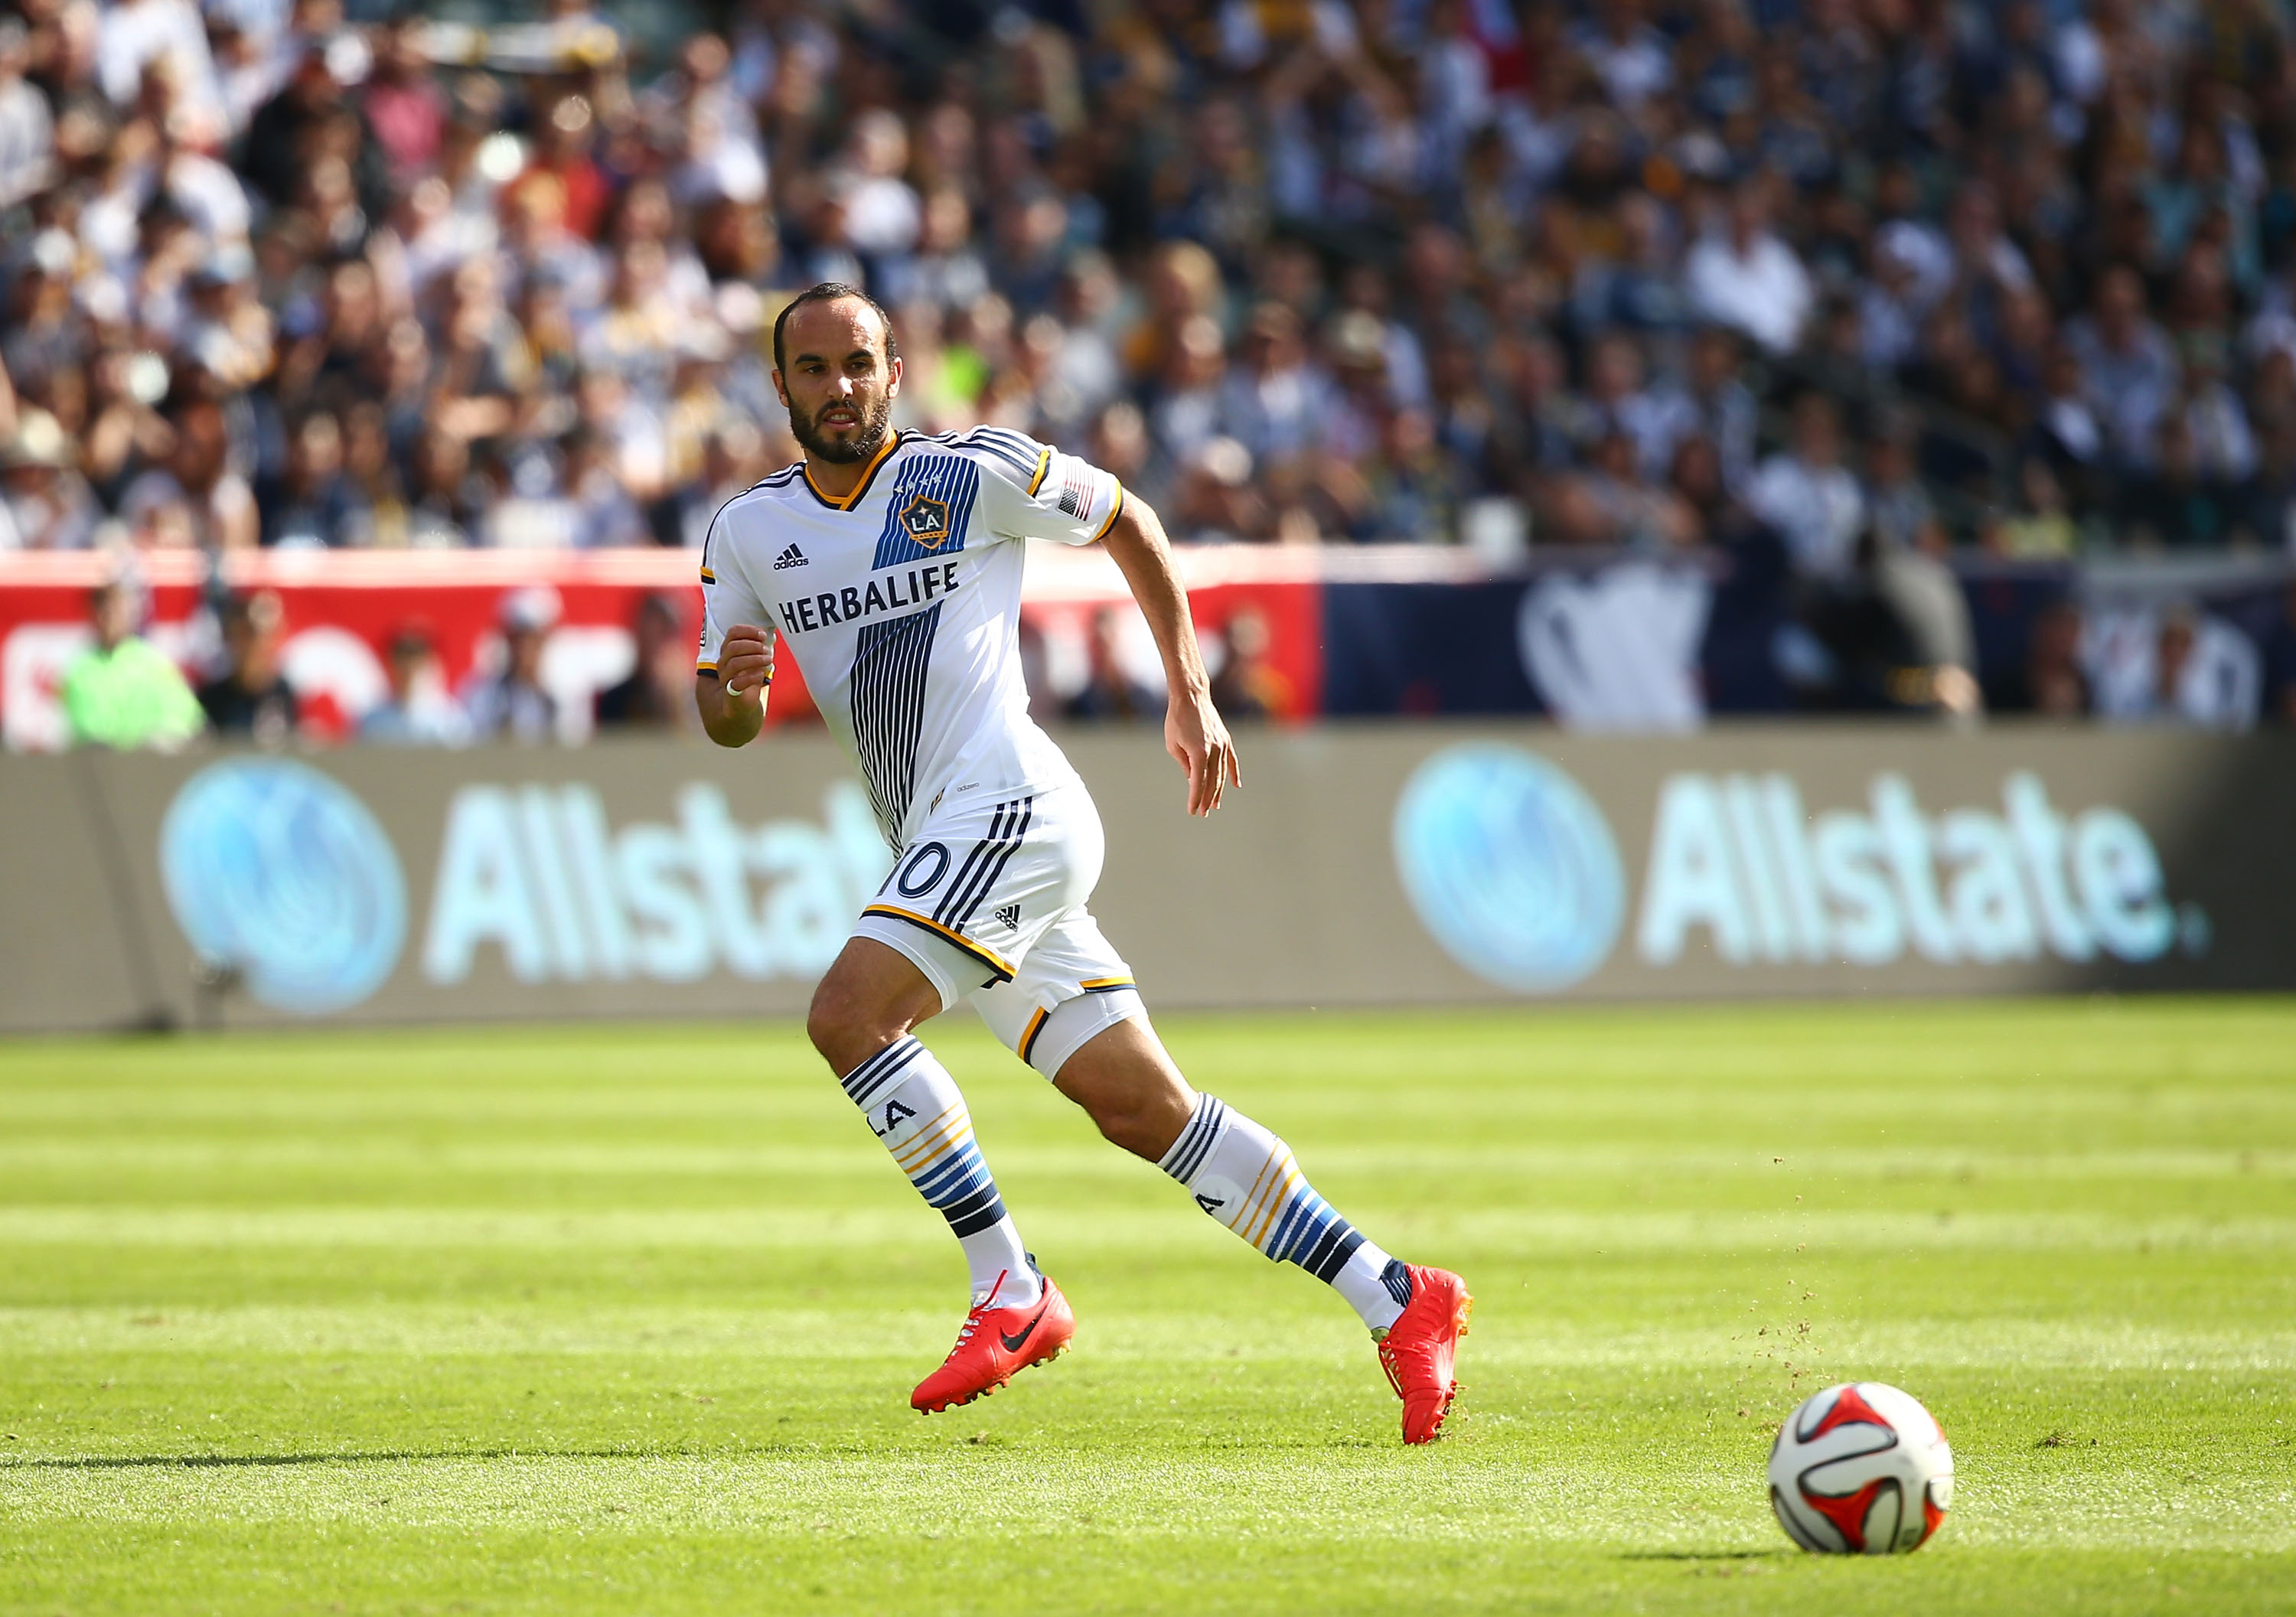 Landon Donovan rejoins LA Galaxy, ending 2-year retirement